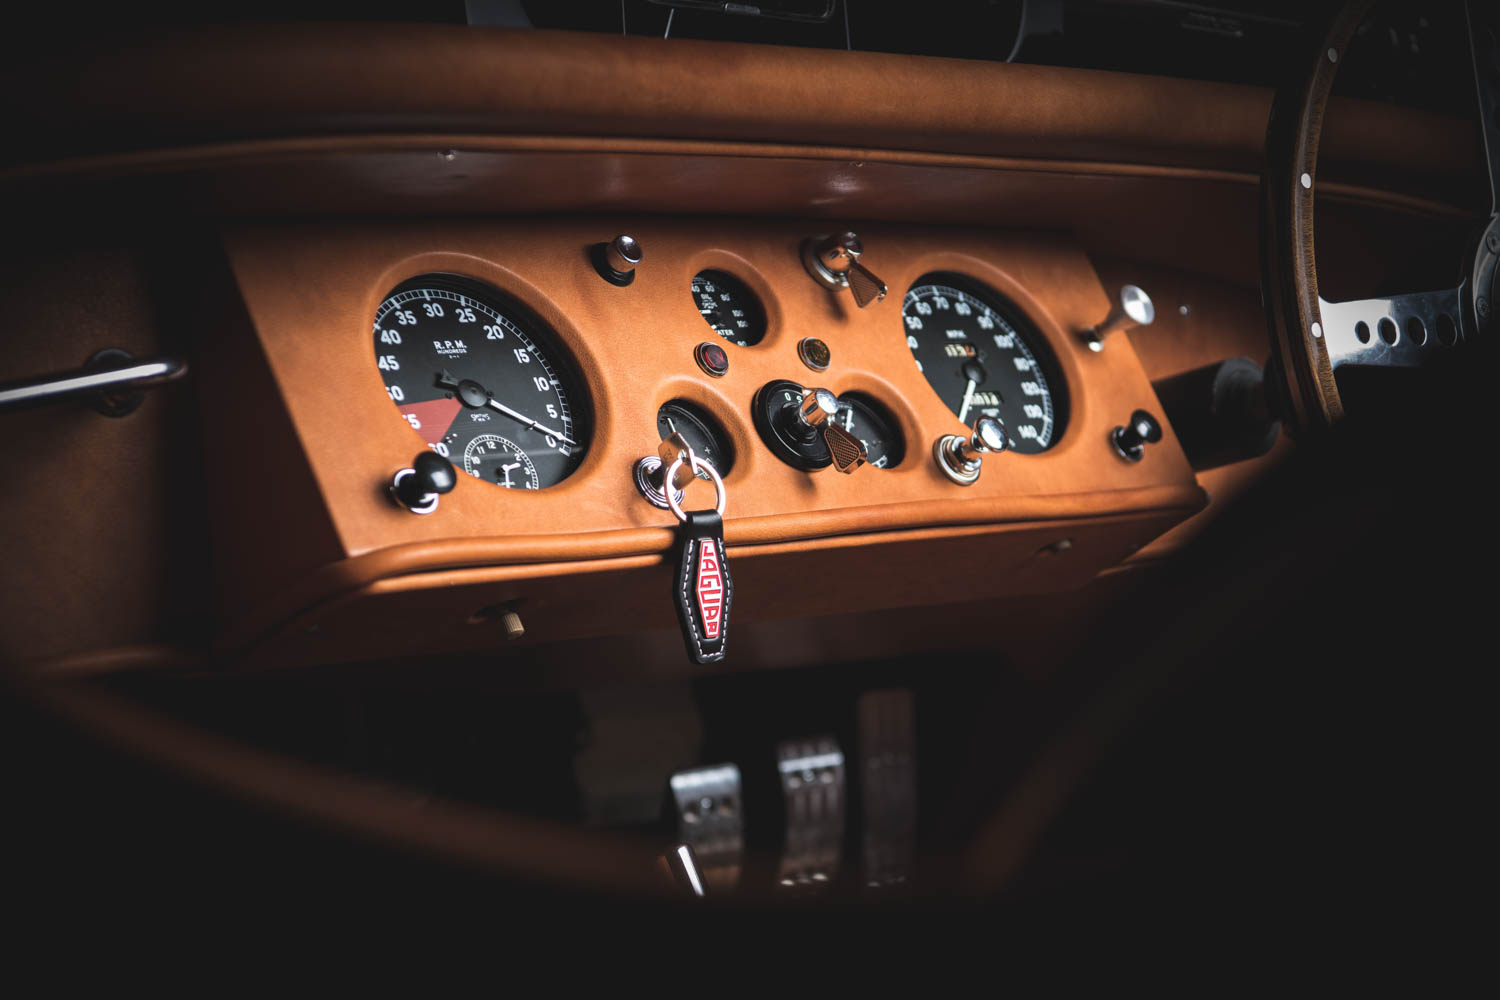 Jaguar XK120 gauges